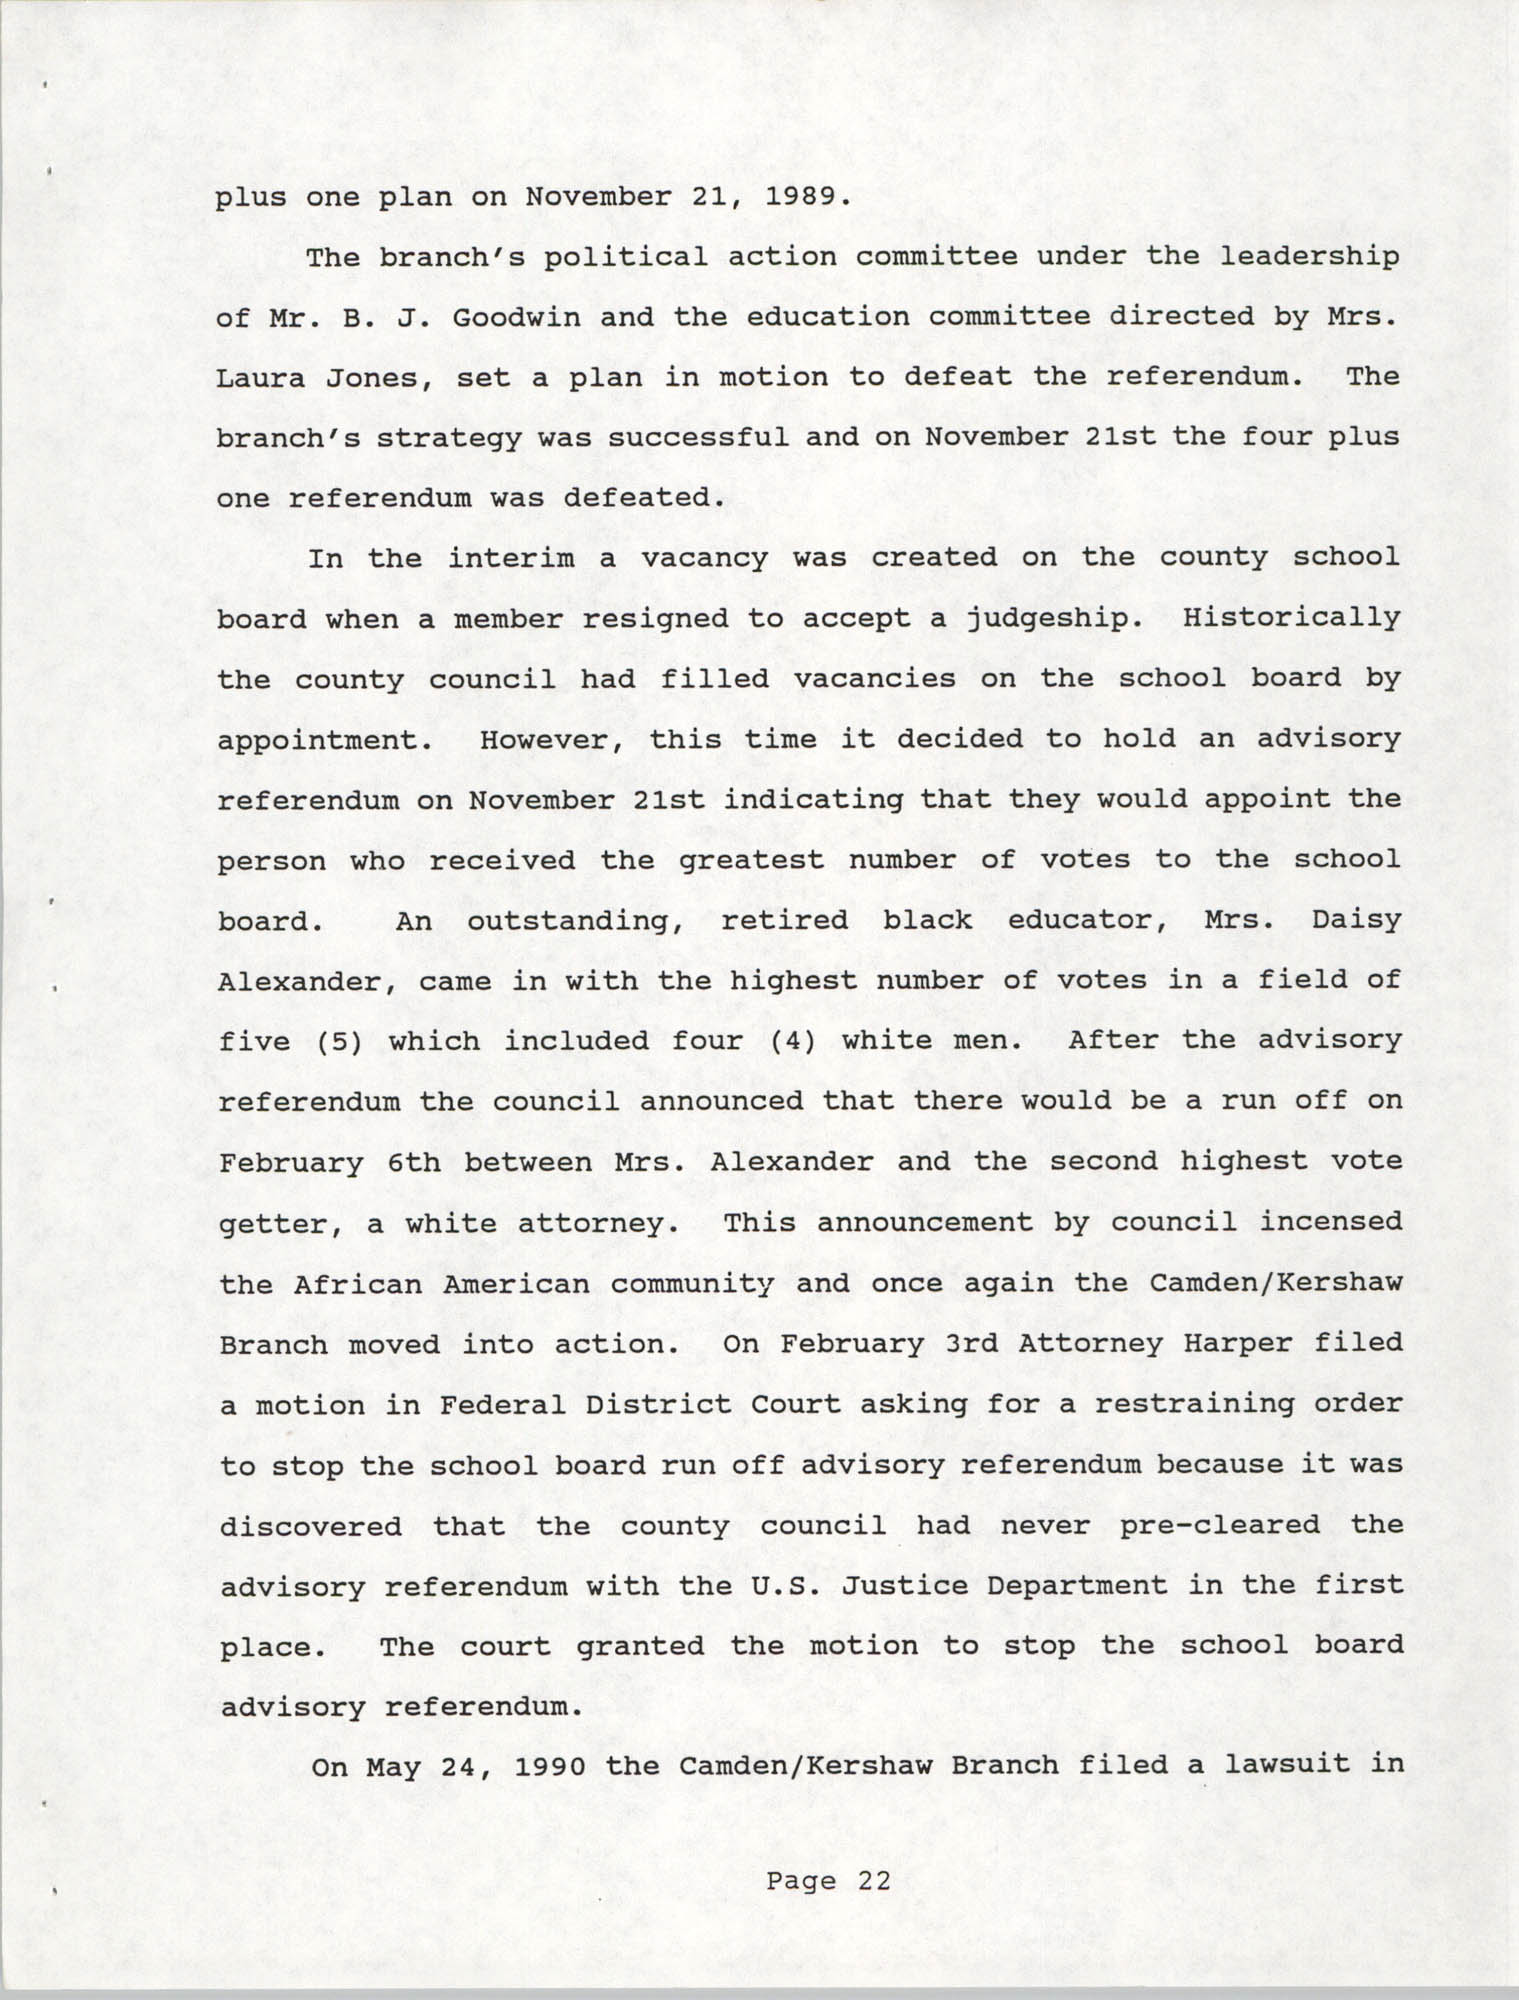 South Carolina Conference of Branches of the NAACP, 1990 Annual Report, Part One, Page 22